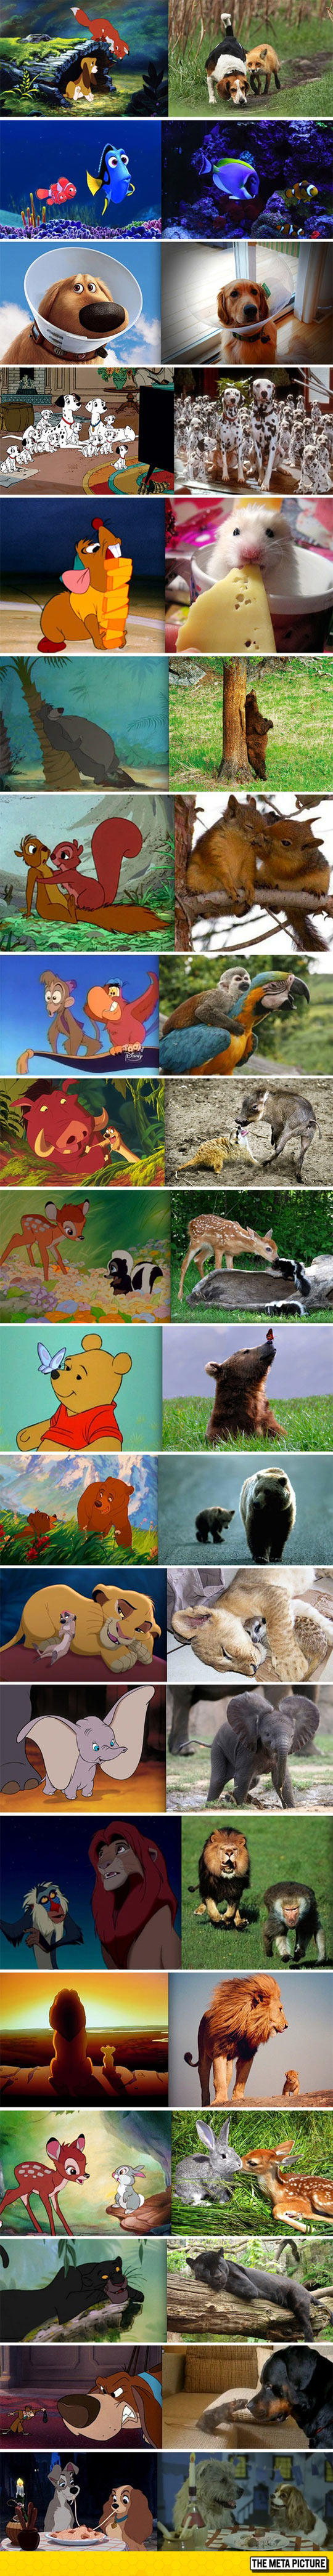 cool-Disney-movies-real-life